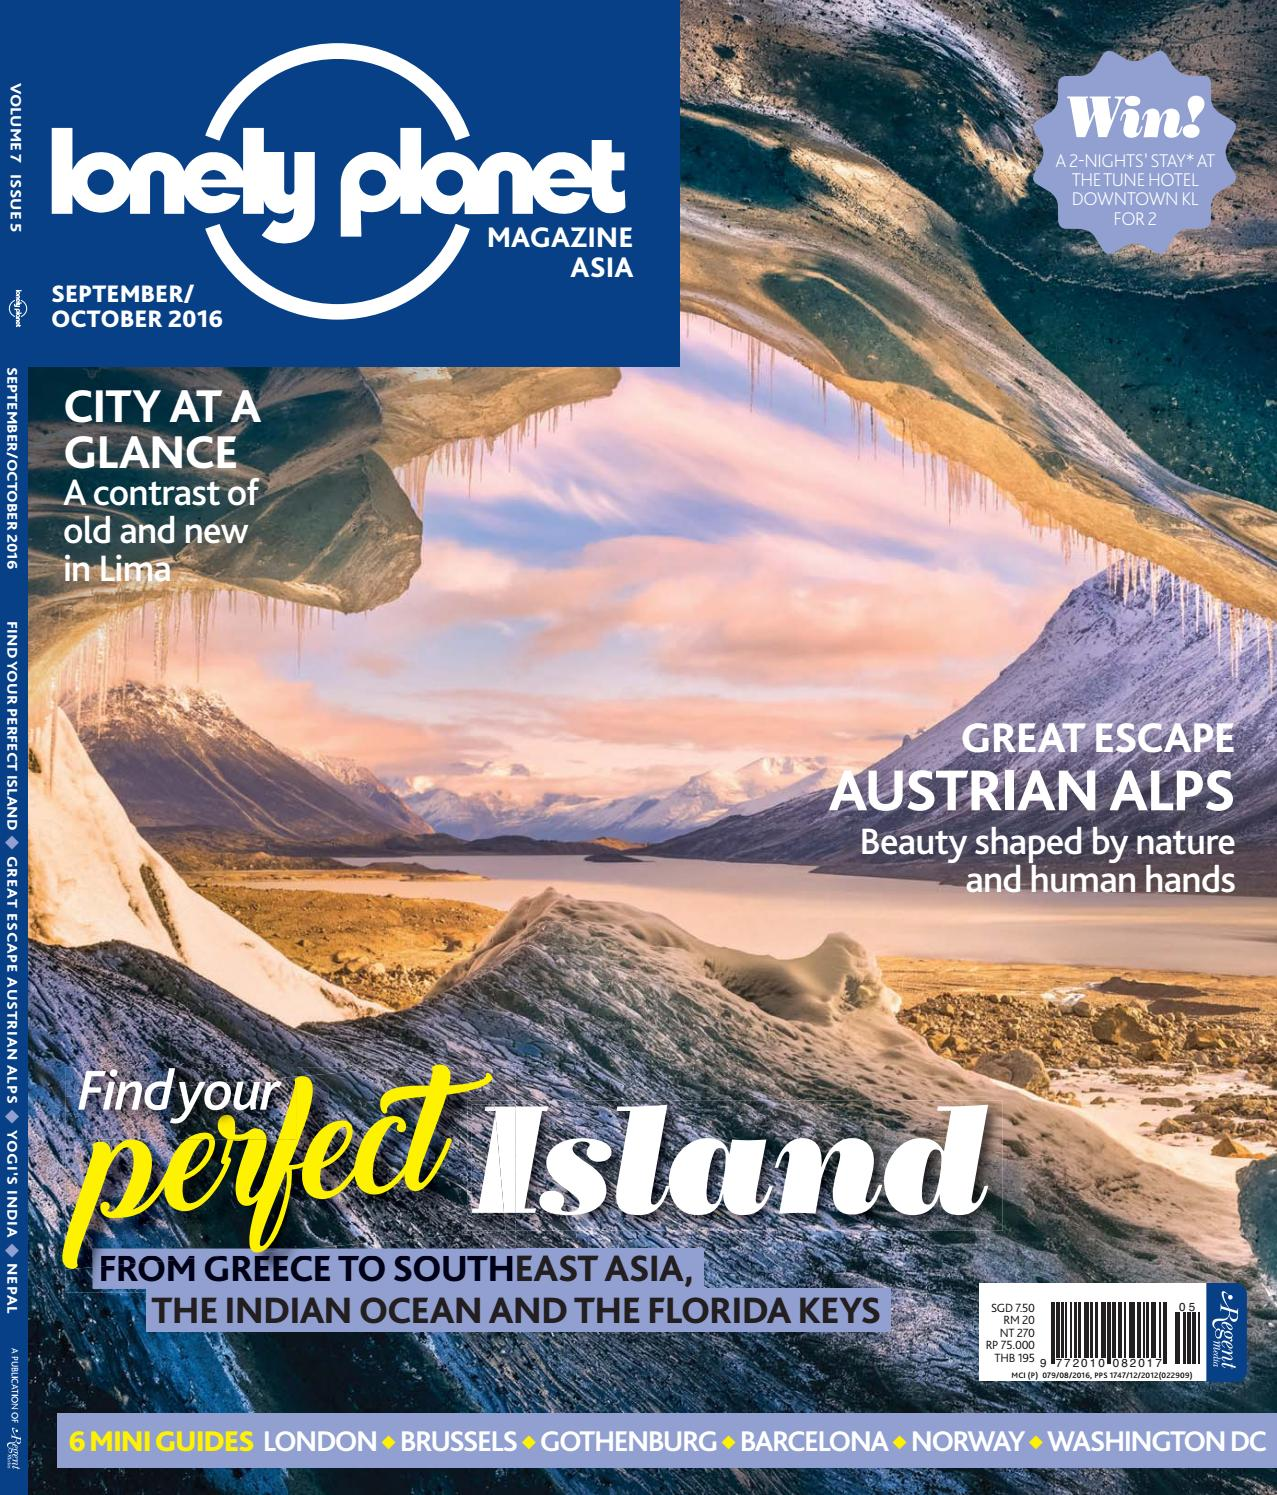 lonely planet essay contest 25 words 91 121 113 106 lonely planet essay contest 25 words